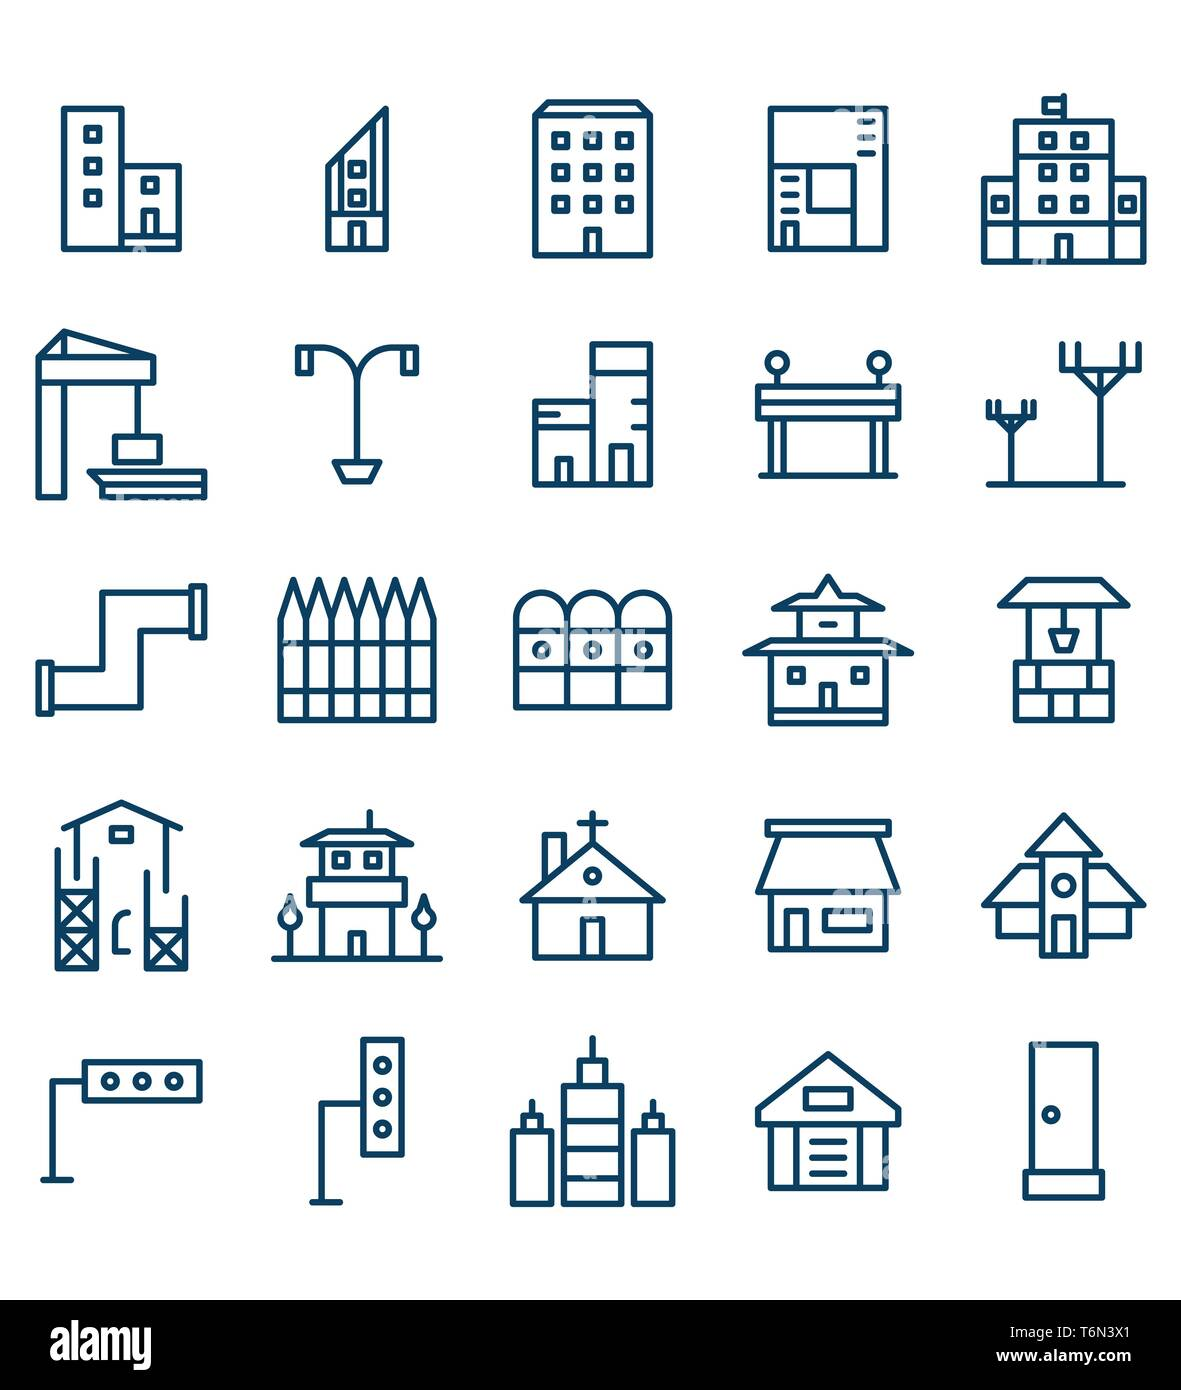 Set of Building and real estate city Blue Line vector illustration icon or symbol. Editable stroke and color - Stock Image